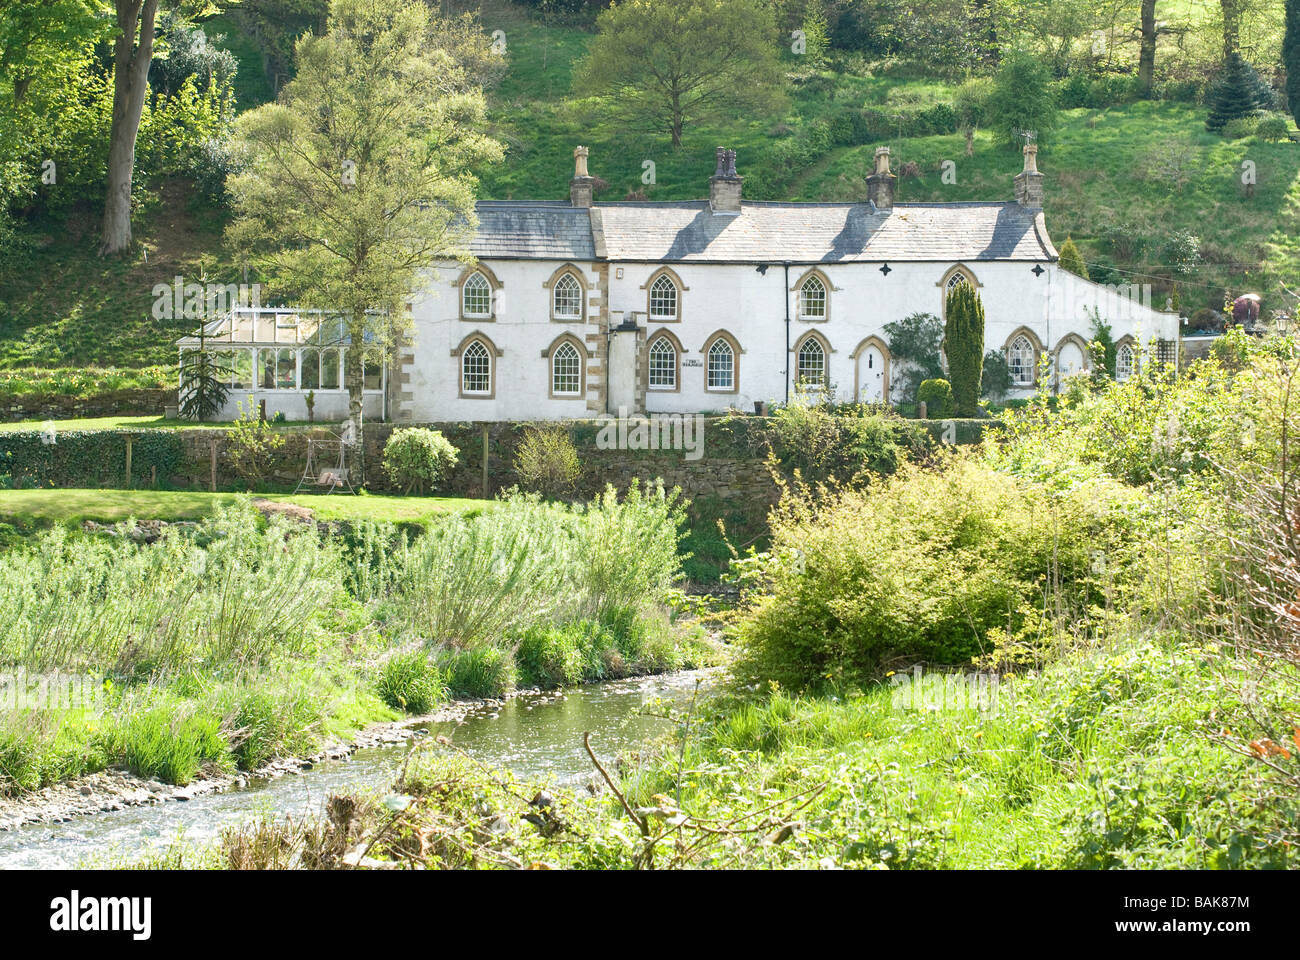 Cottages at Whalley in Lancashire - Stock Image